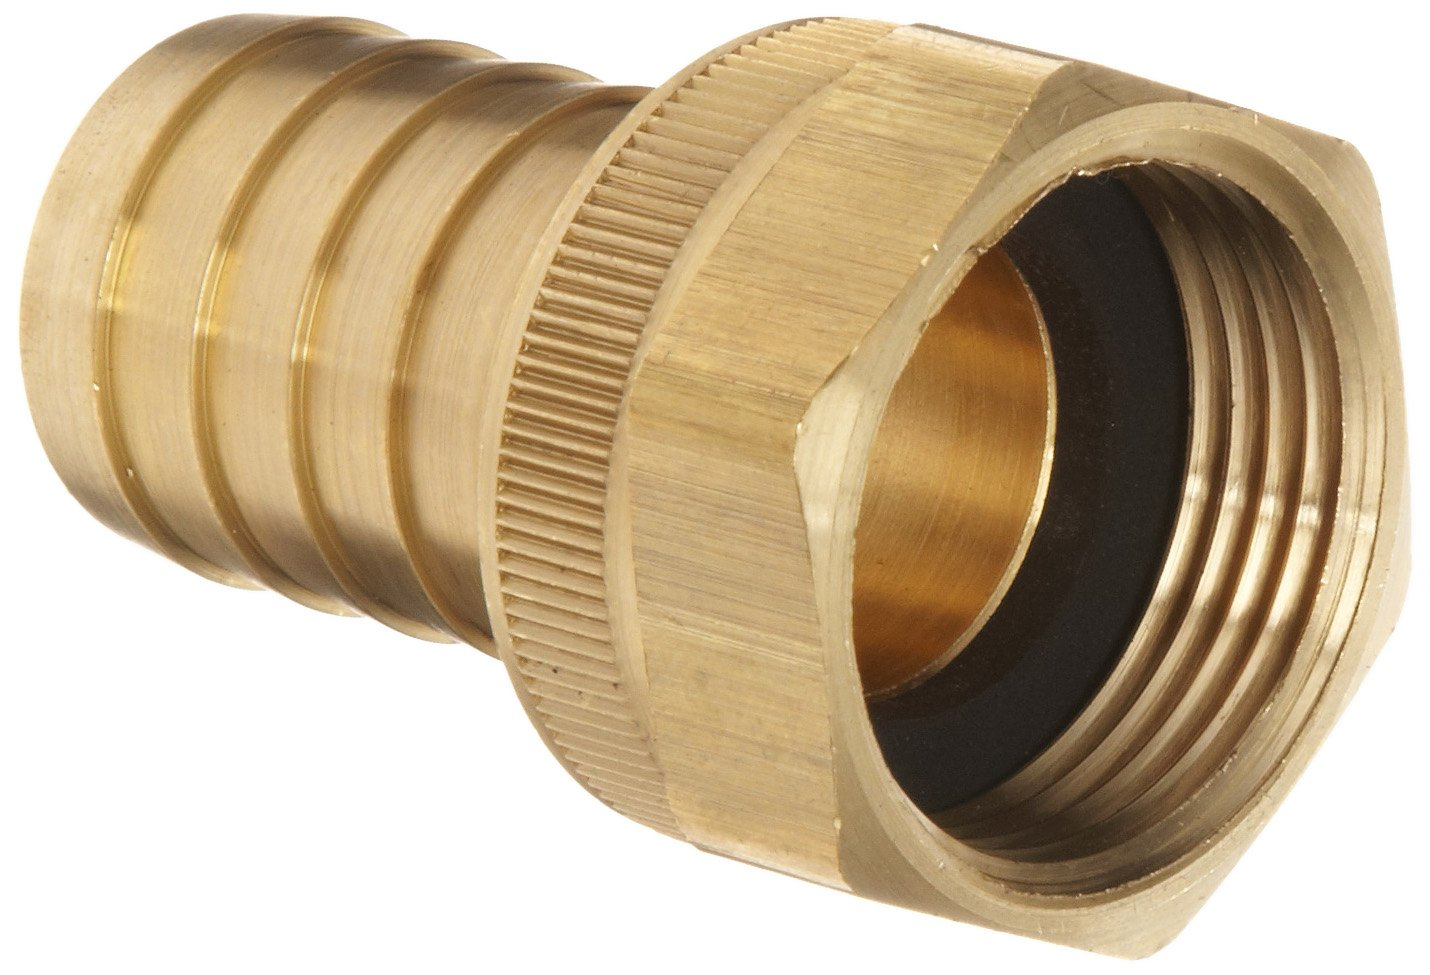 Dixon BS848 Fixed price for sale Brass Hose Fitting Swivel Nut Coupler Limited price sale Machined with